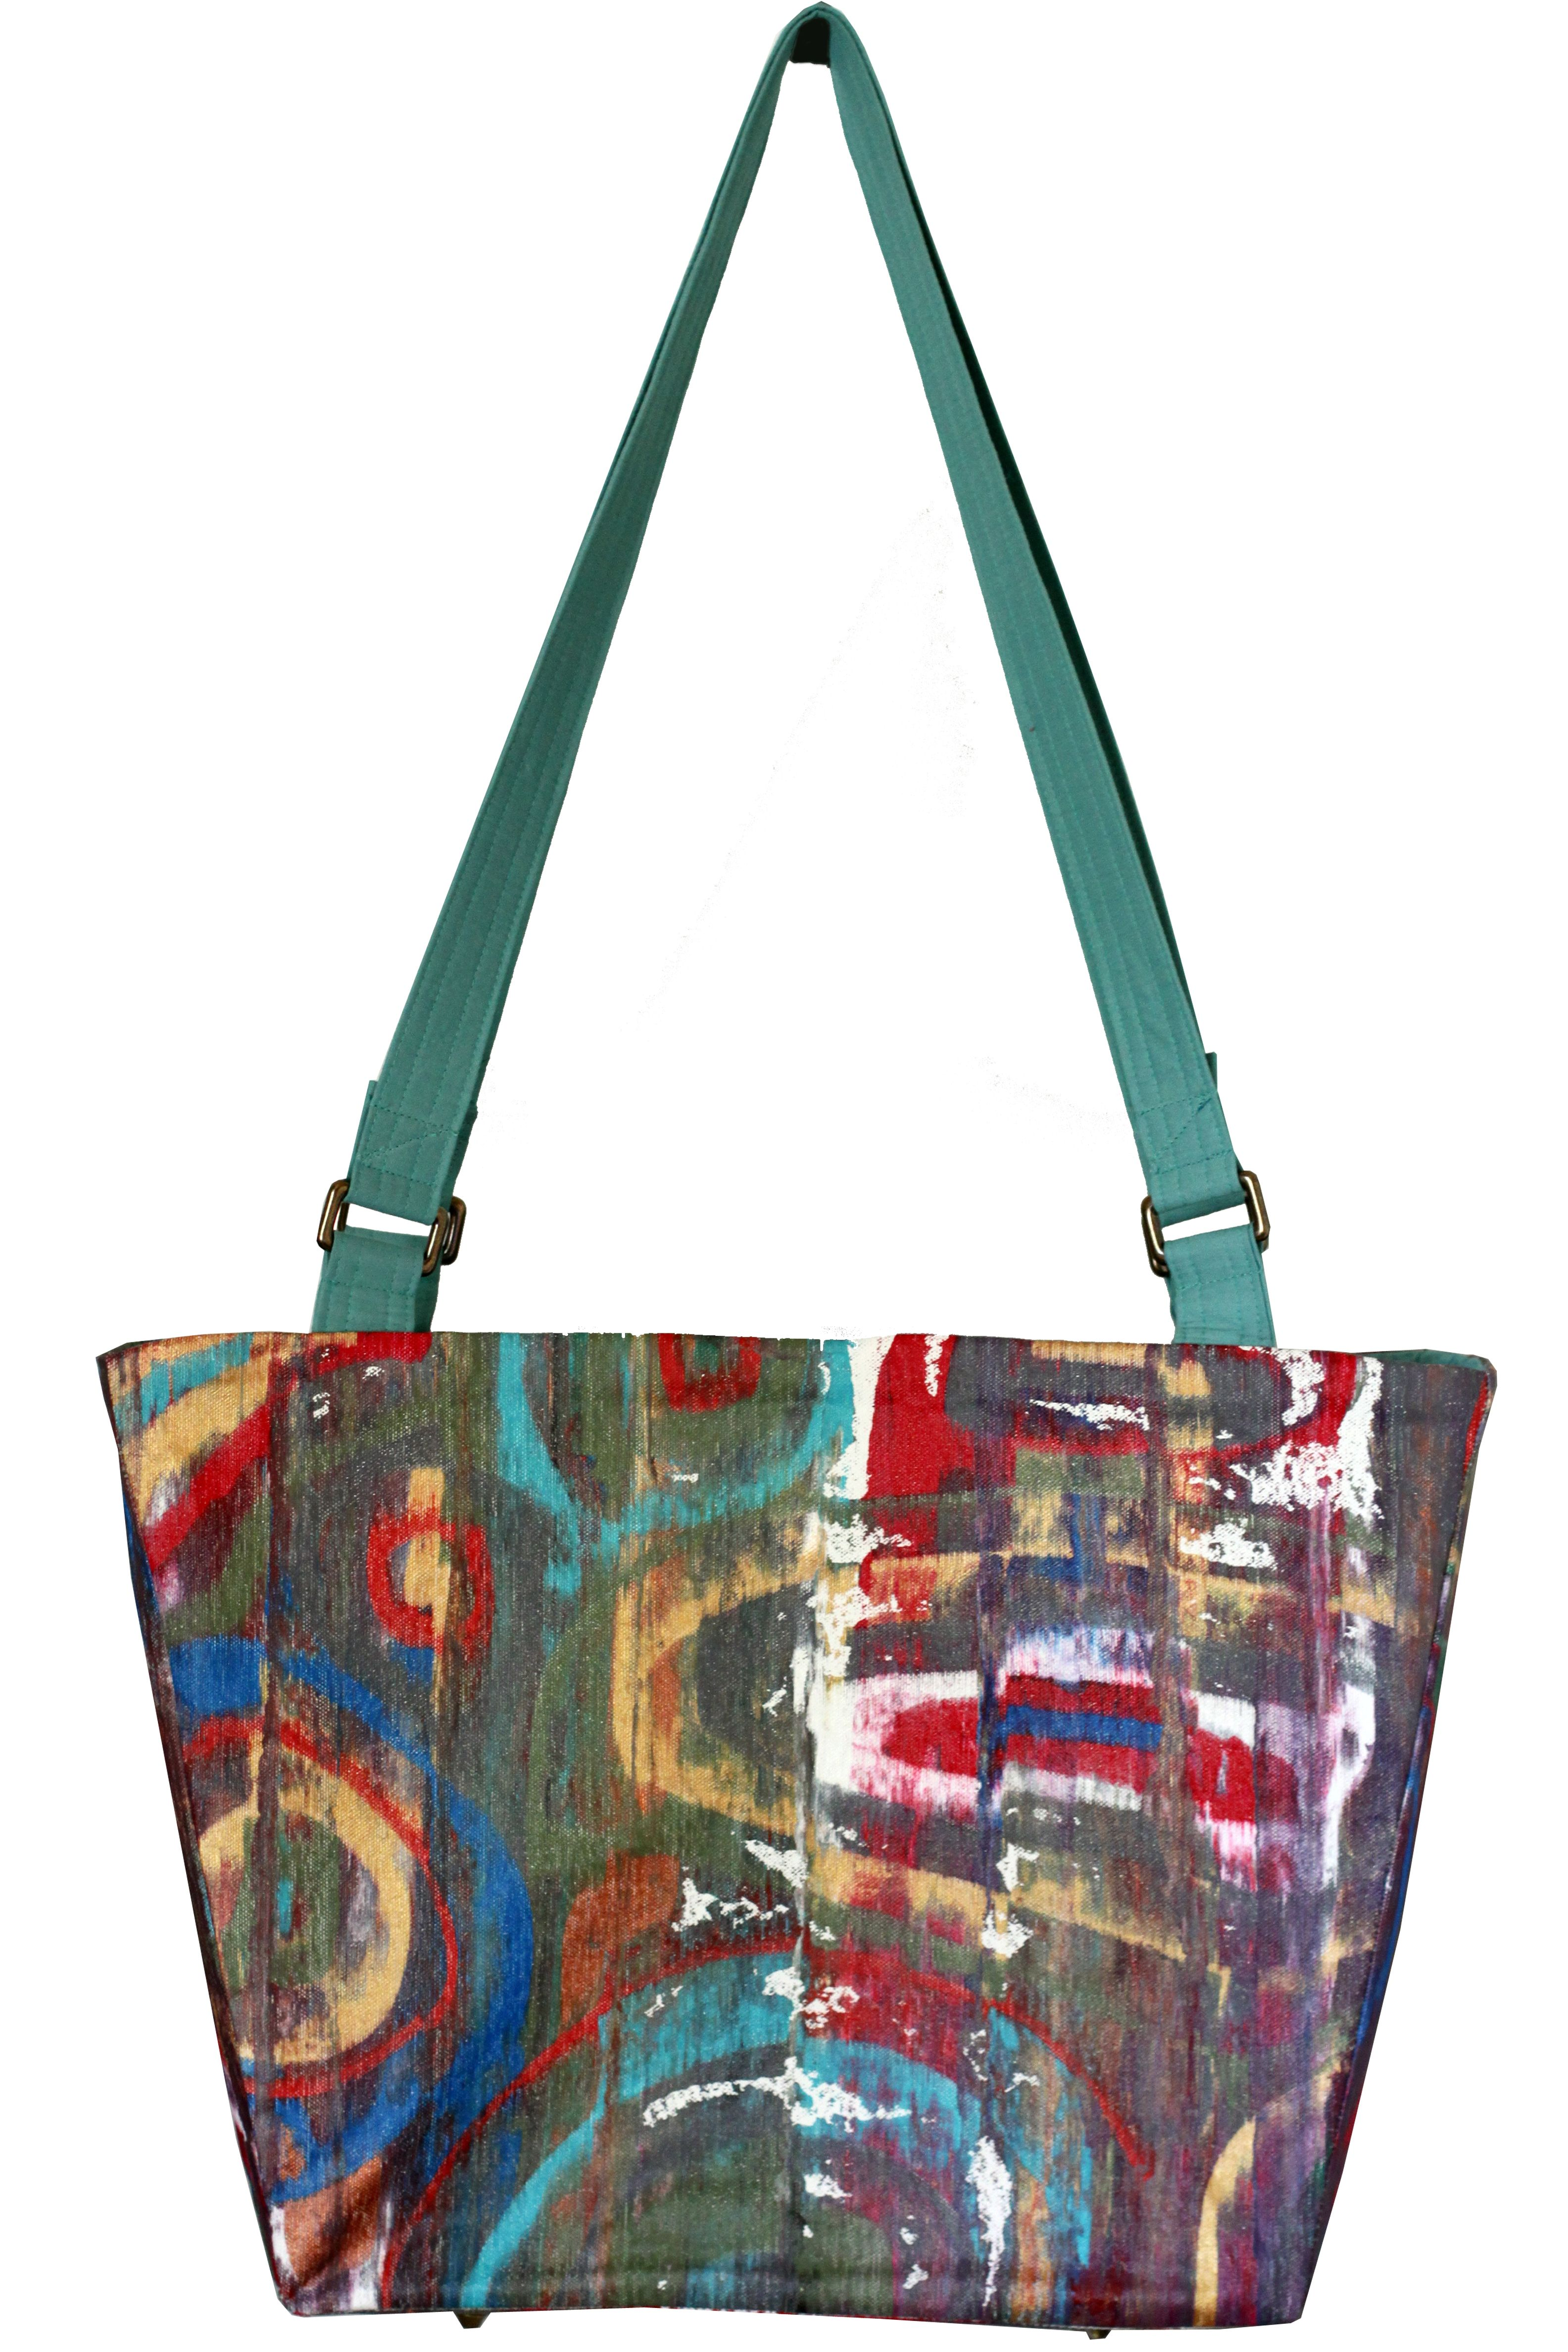 Totally Original Canvas Carry All Lovely One Of A Kind Hand Painted Designer